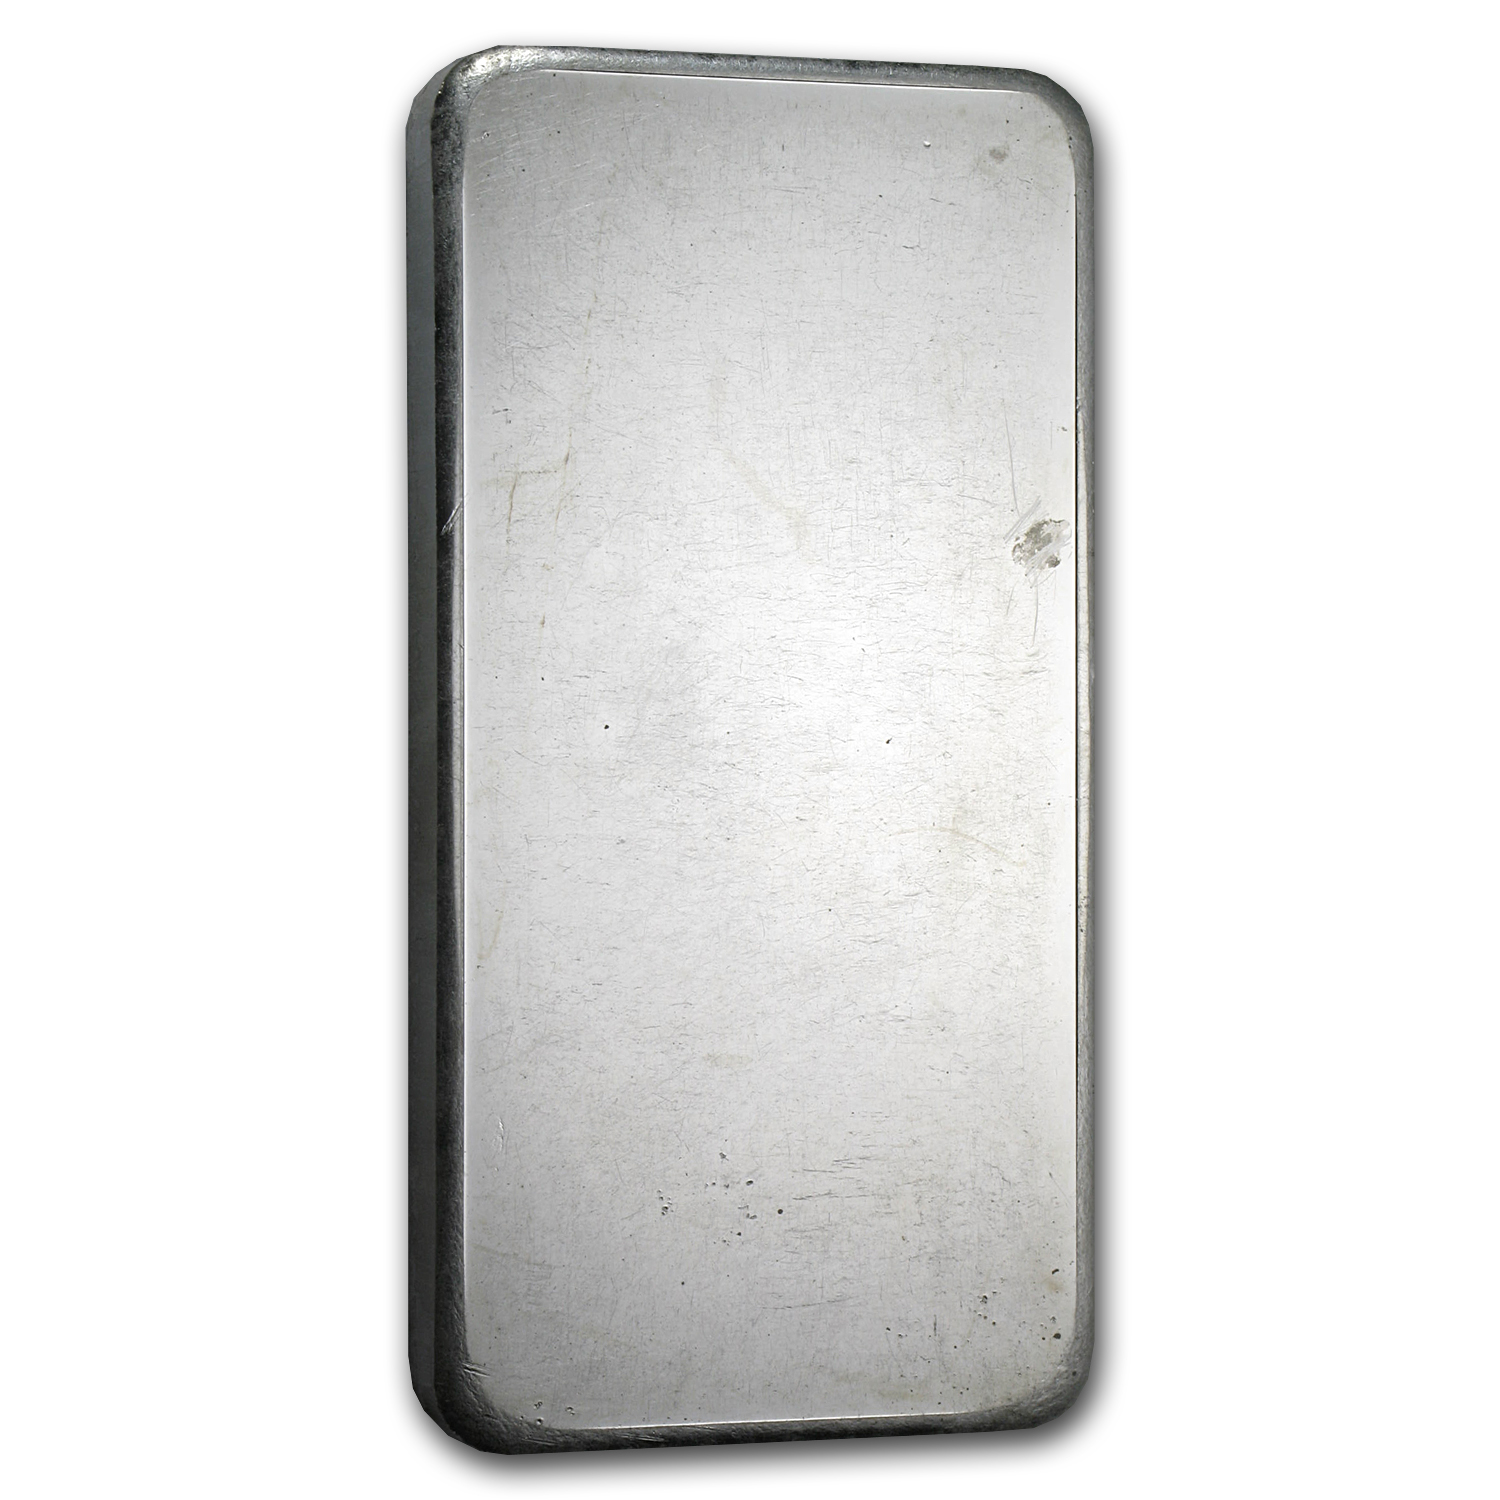 10 oz Silver Bar - Johnson Matthey (Secondary Market) DO NOT USE